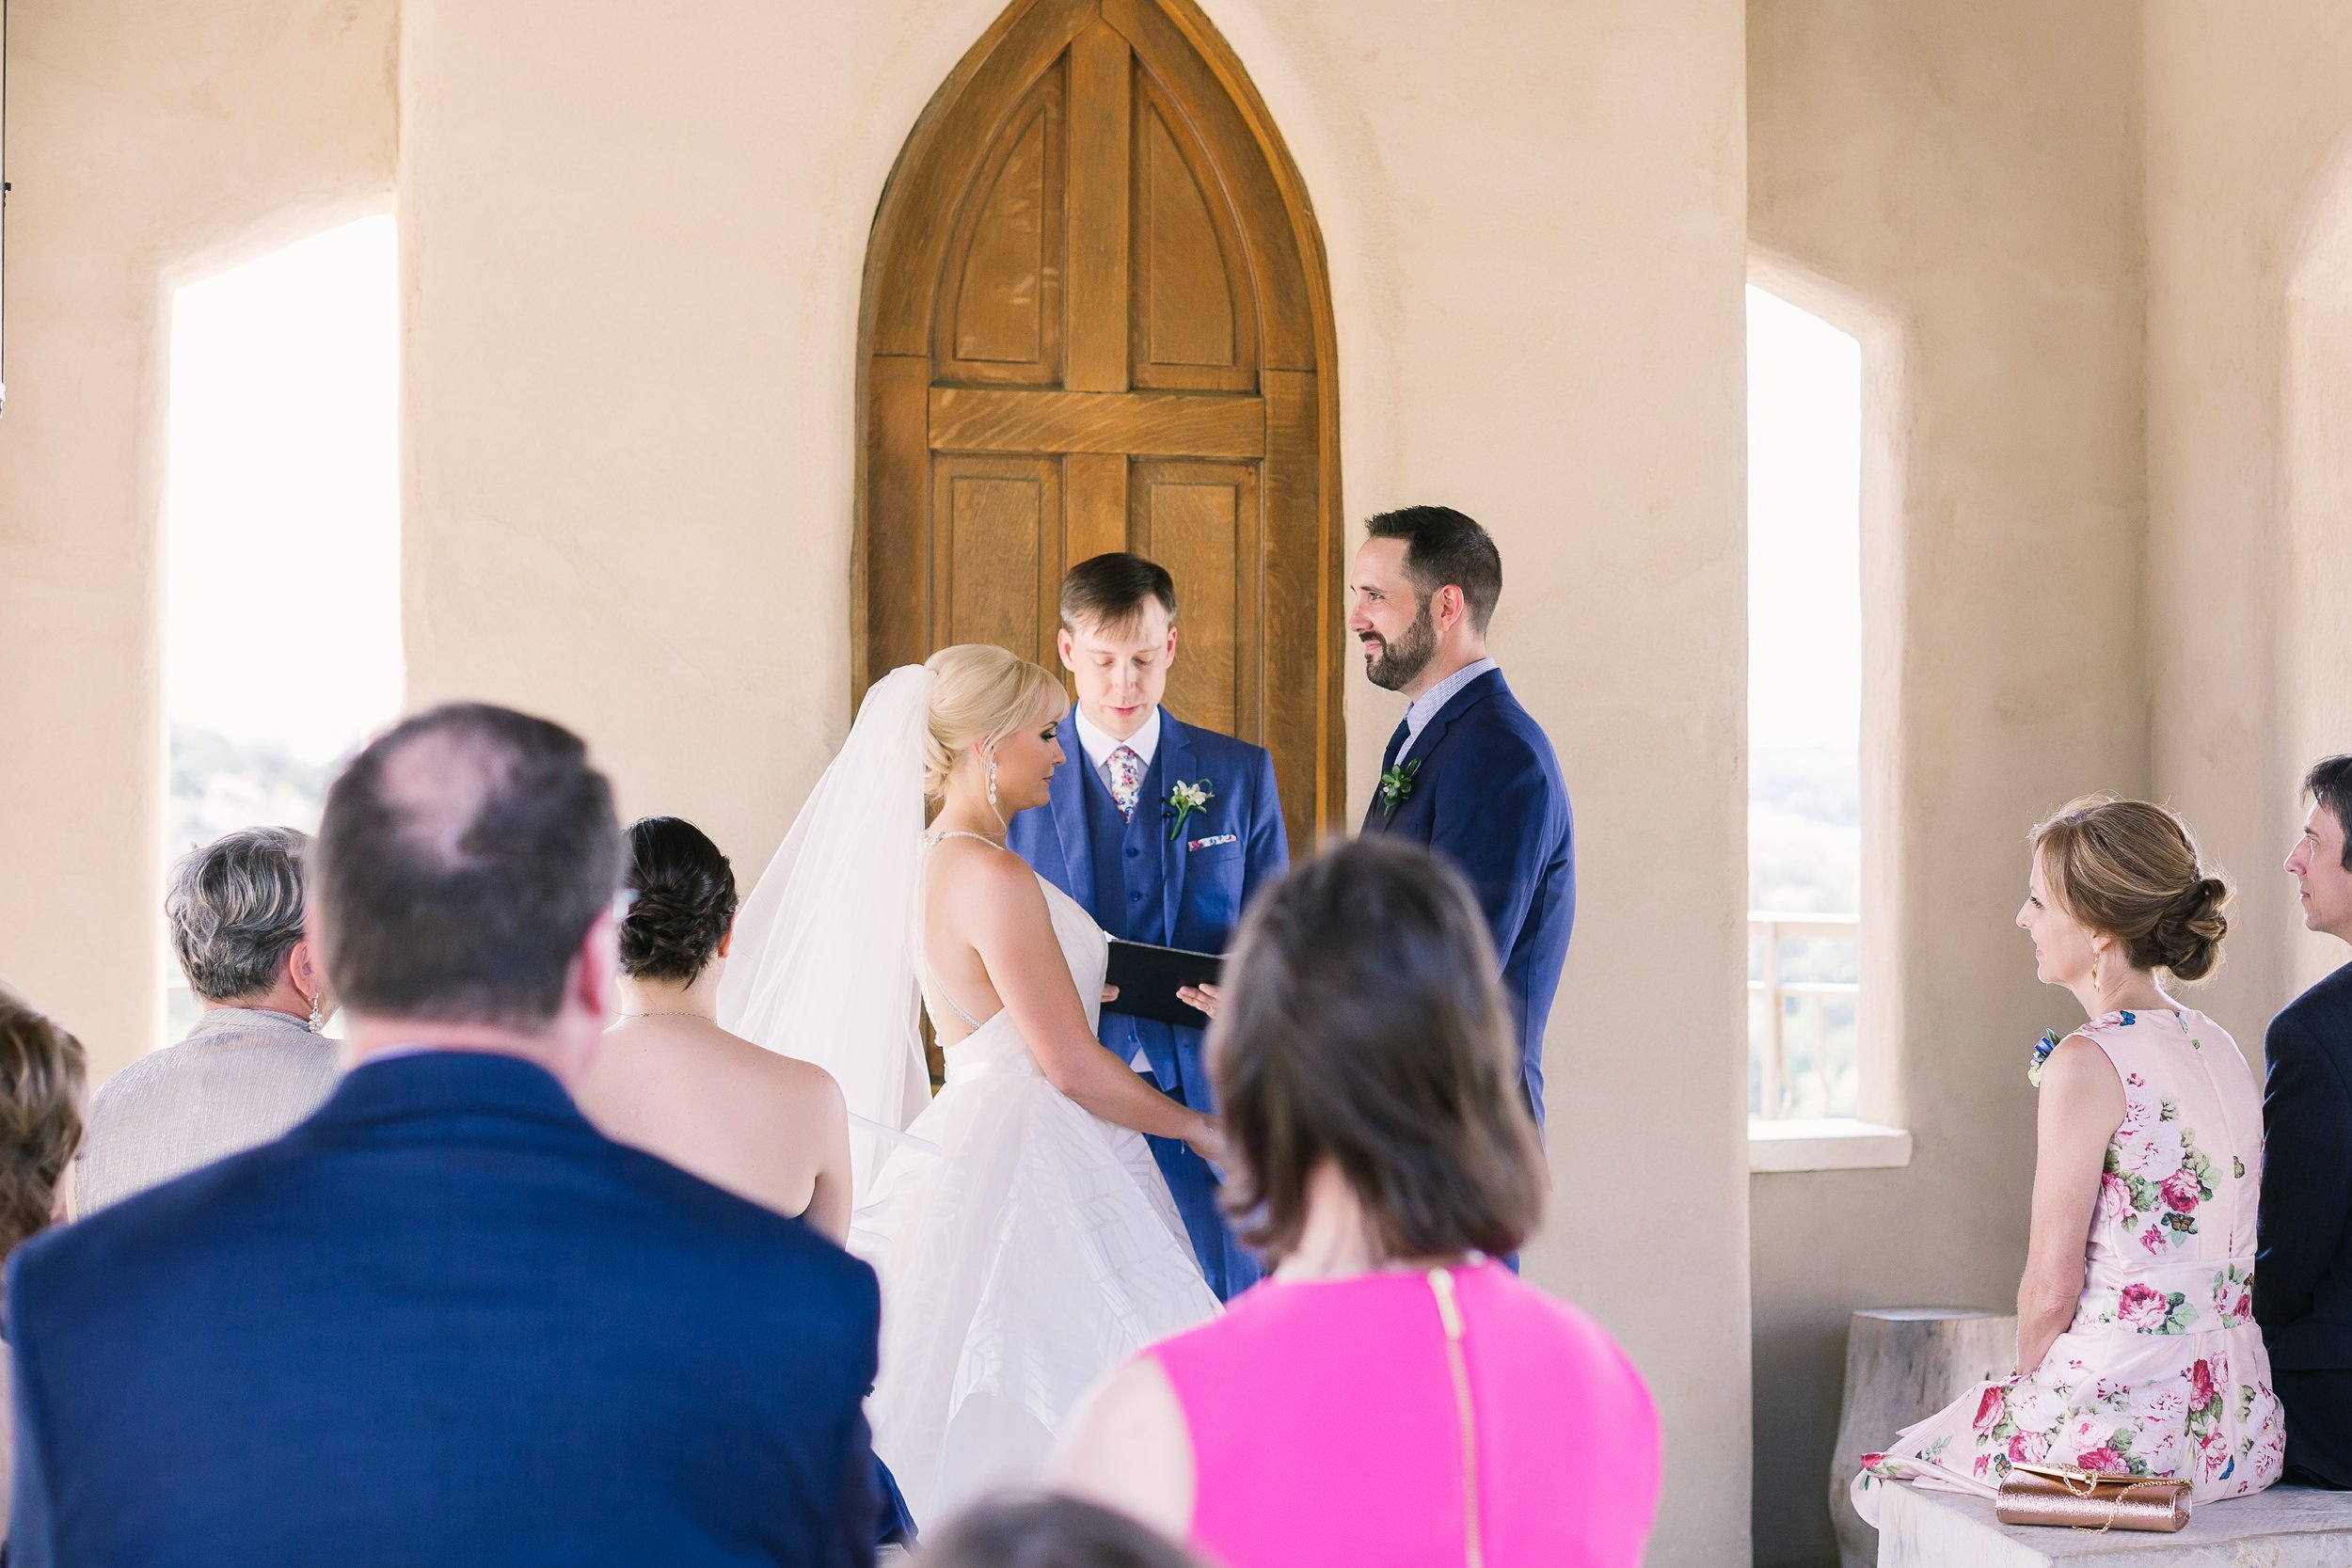 Open air wedding ceremony at Chapel Dulcinea | Intimate Weddings and Elopements